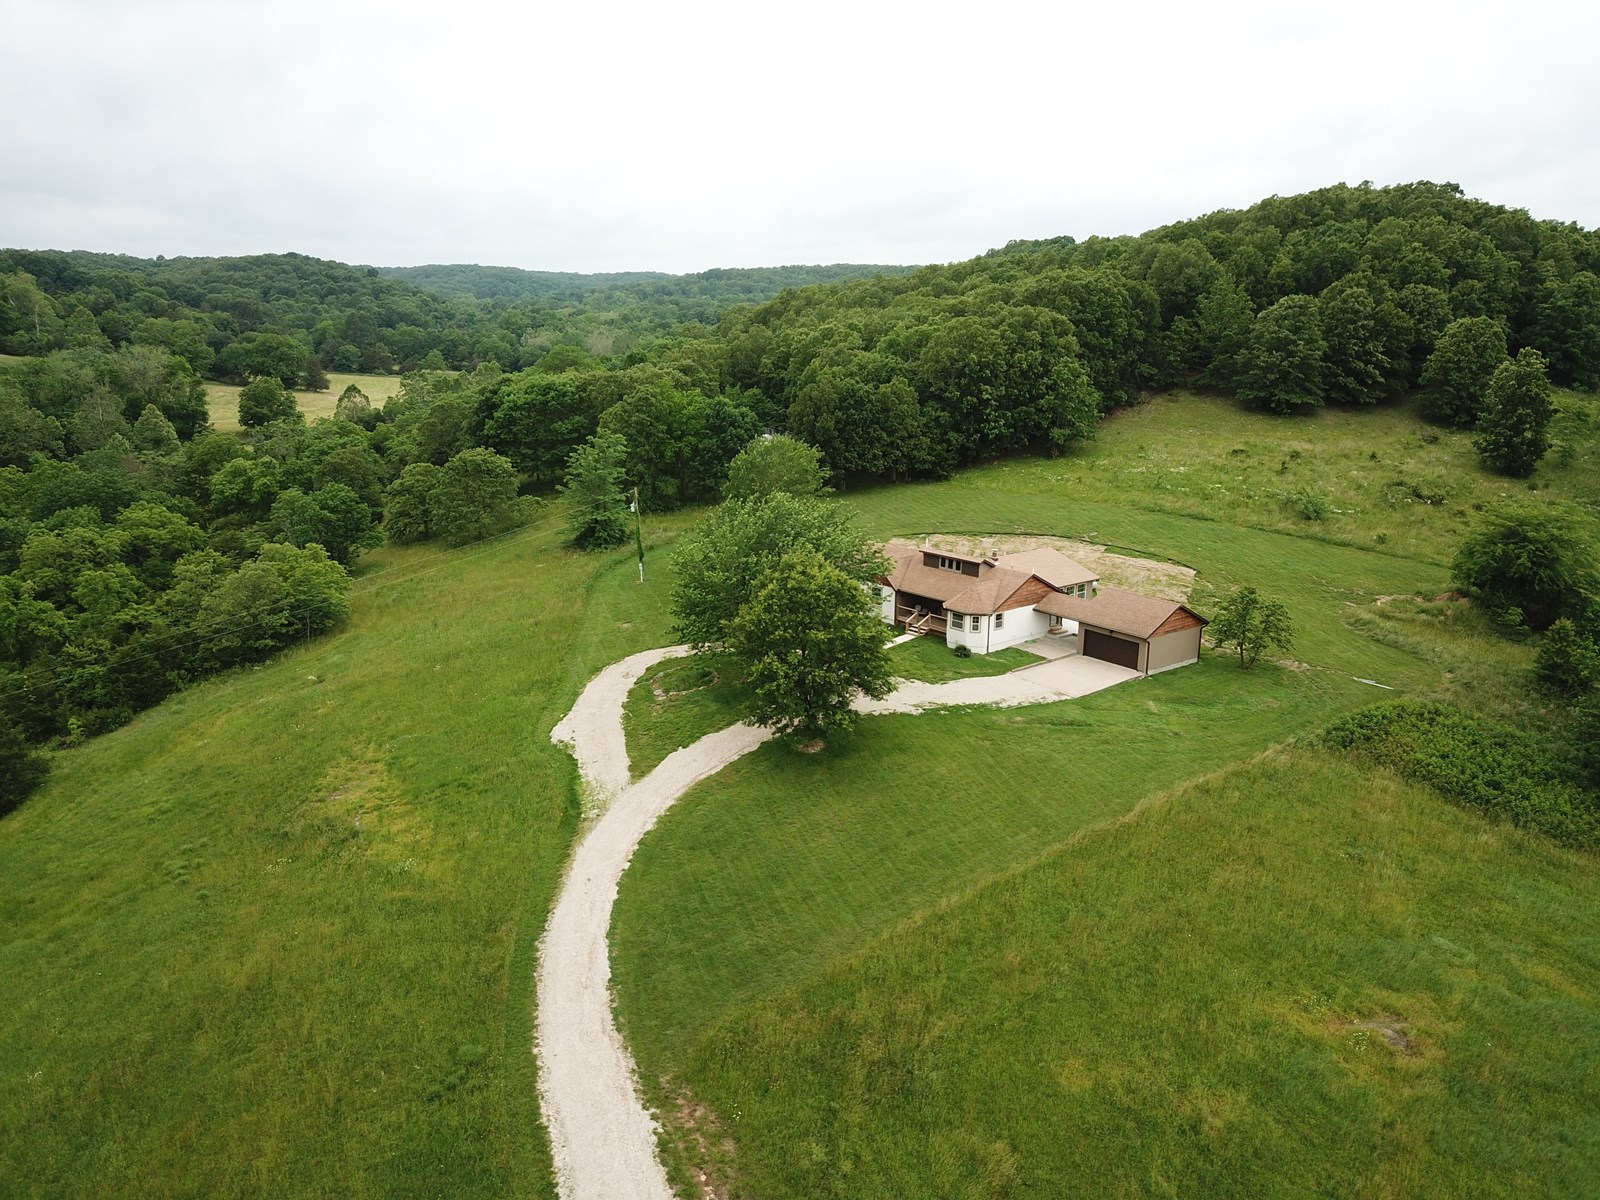 Home for Sale in Southern MO